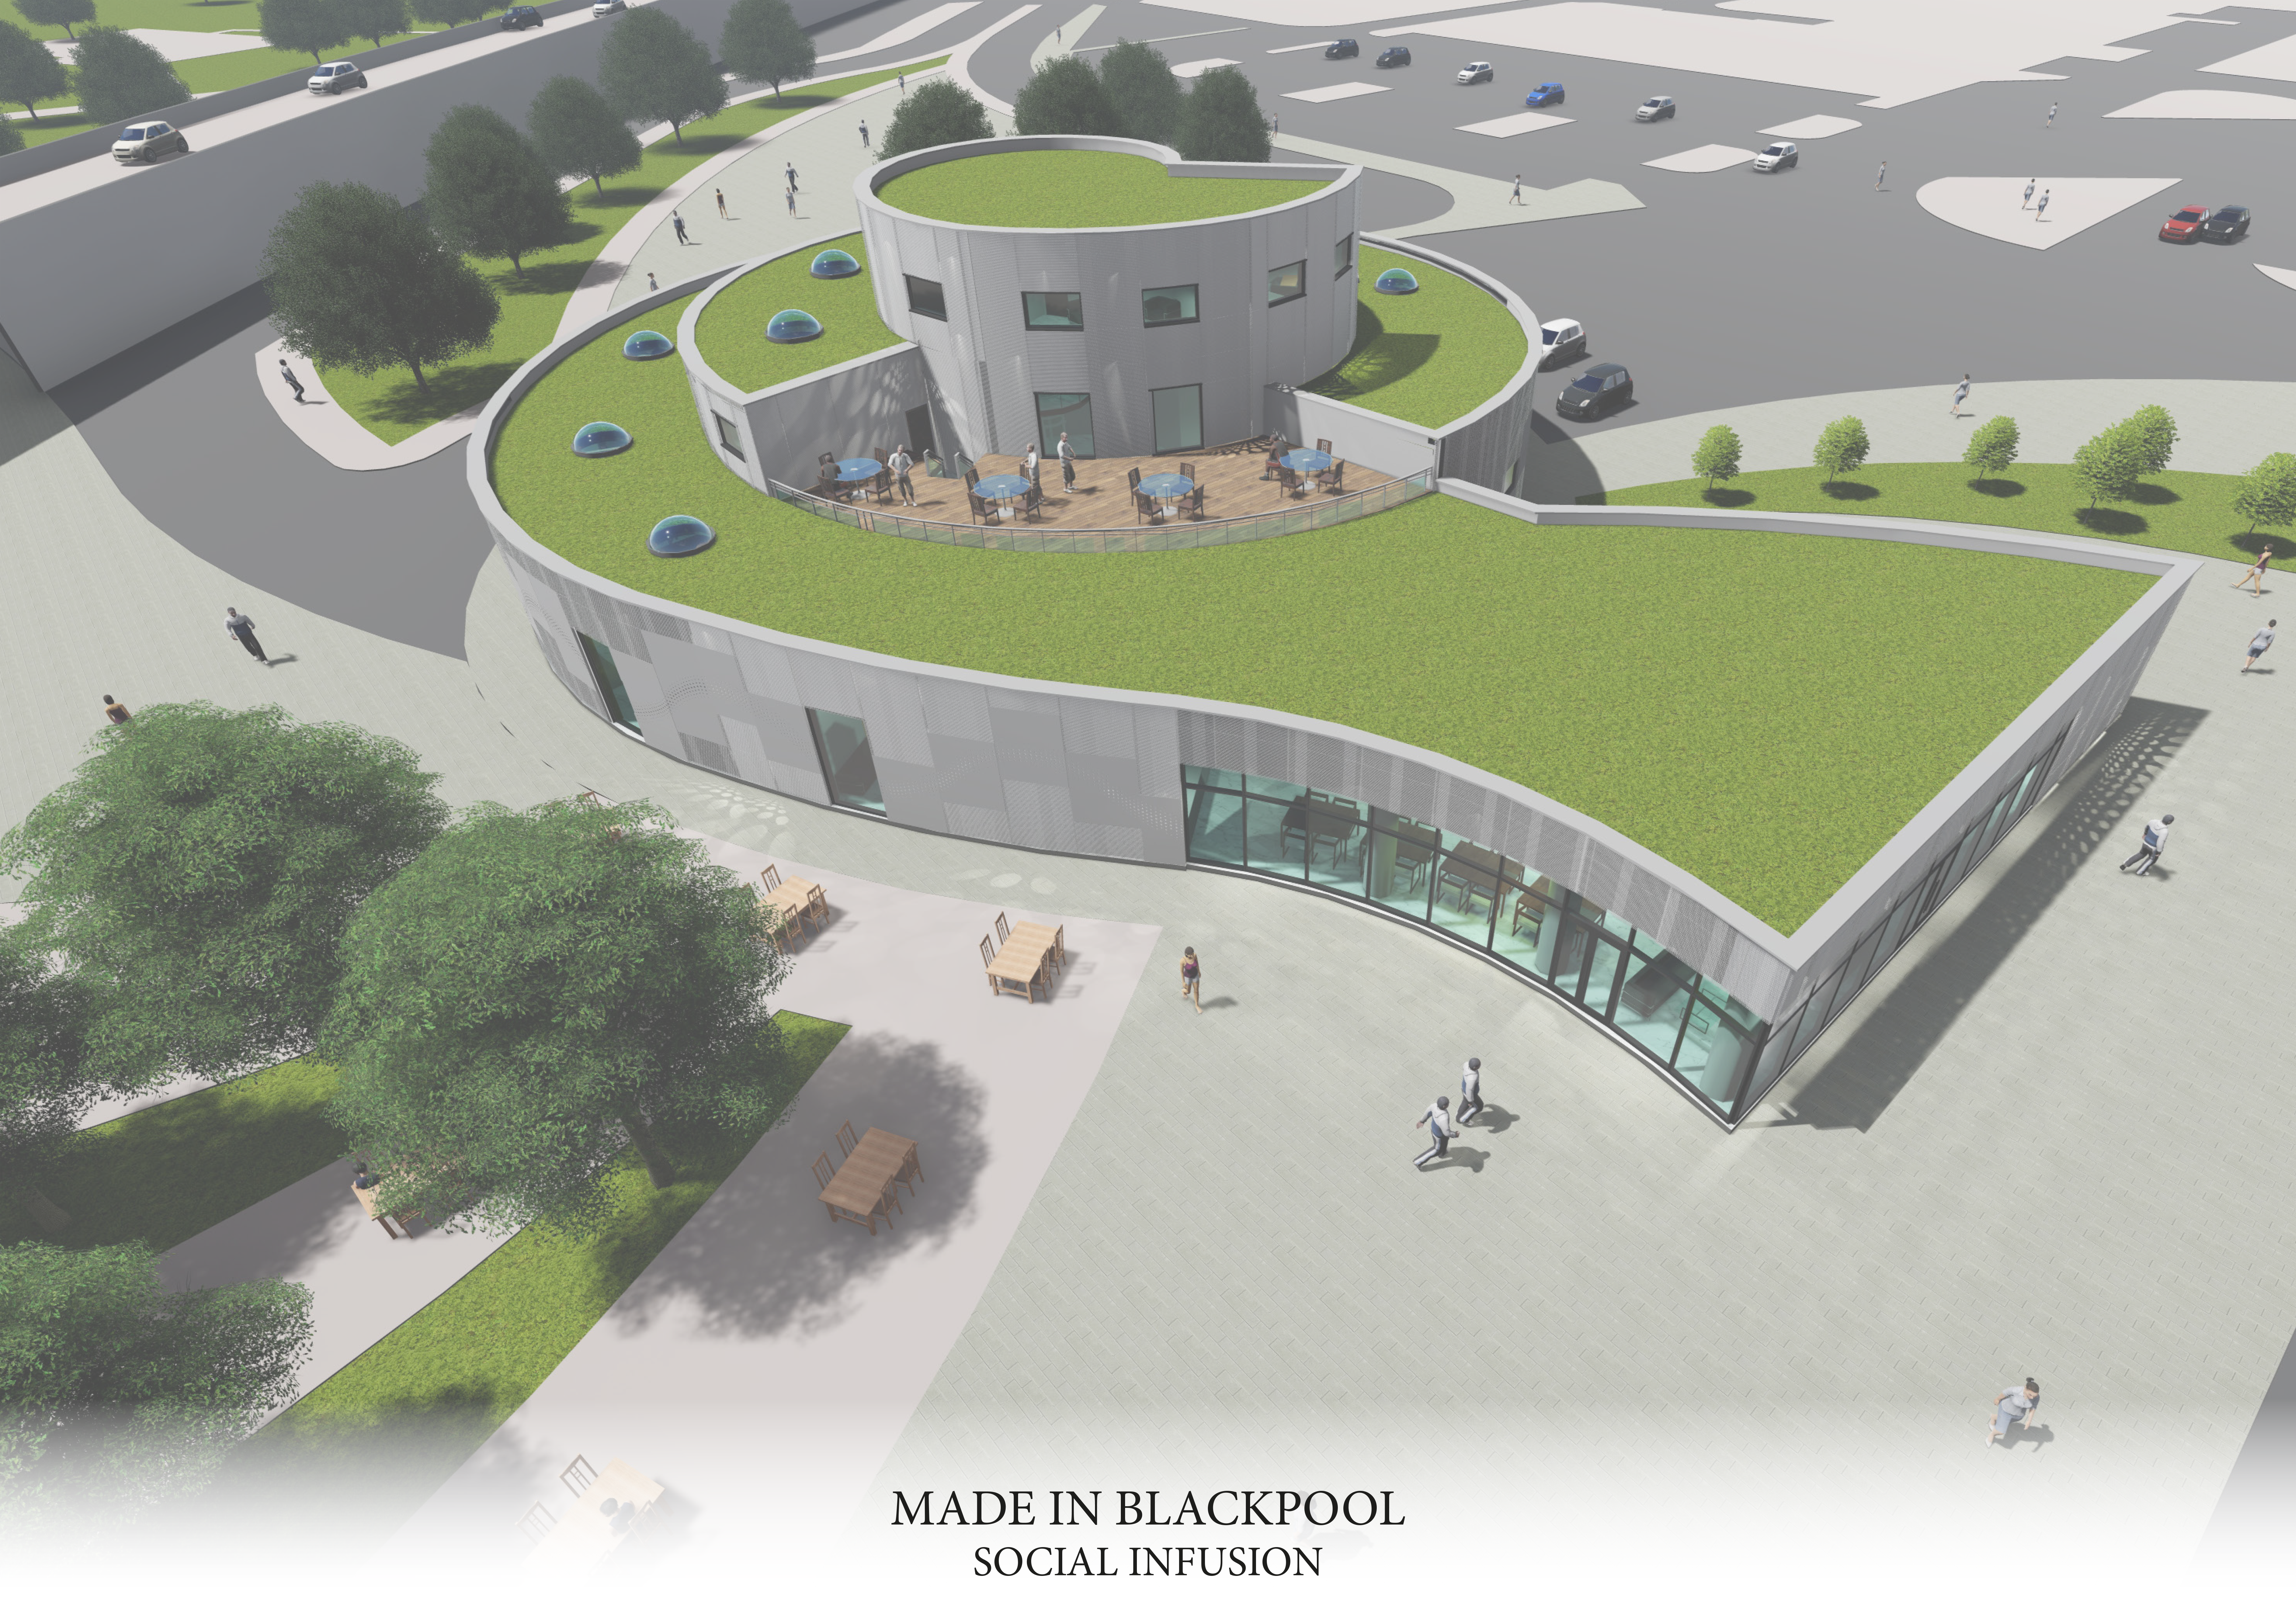 Made in Blackpool Image